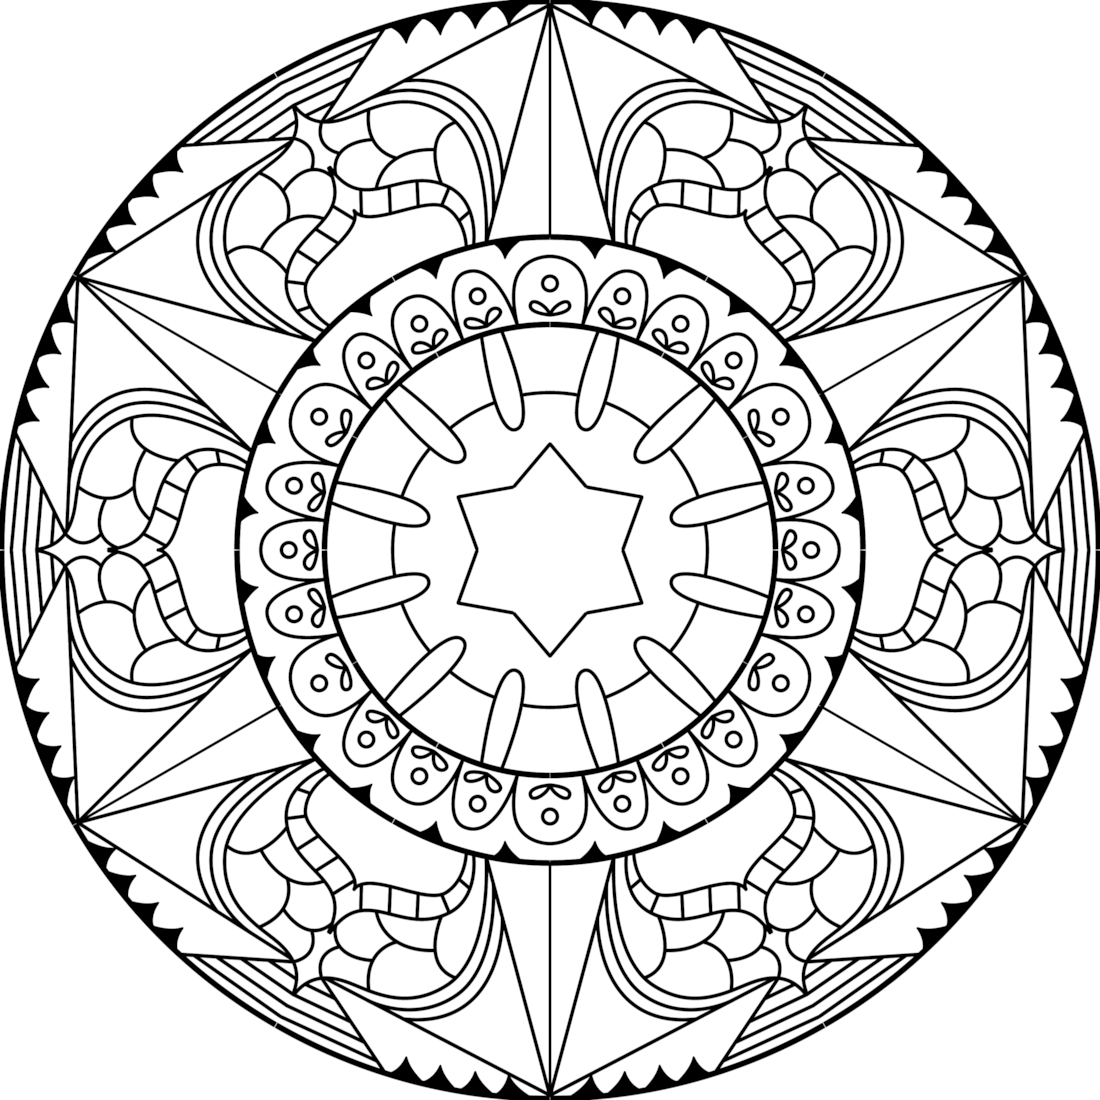 1100x1100 Olympic Gold Medal Platform Coloring Page